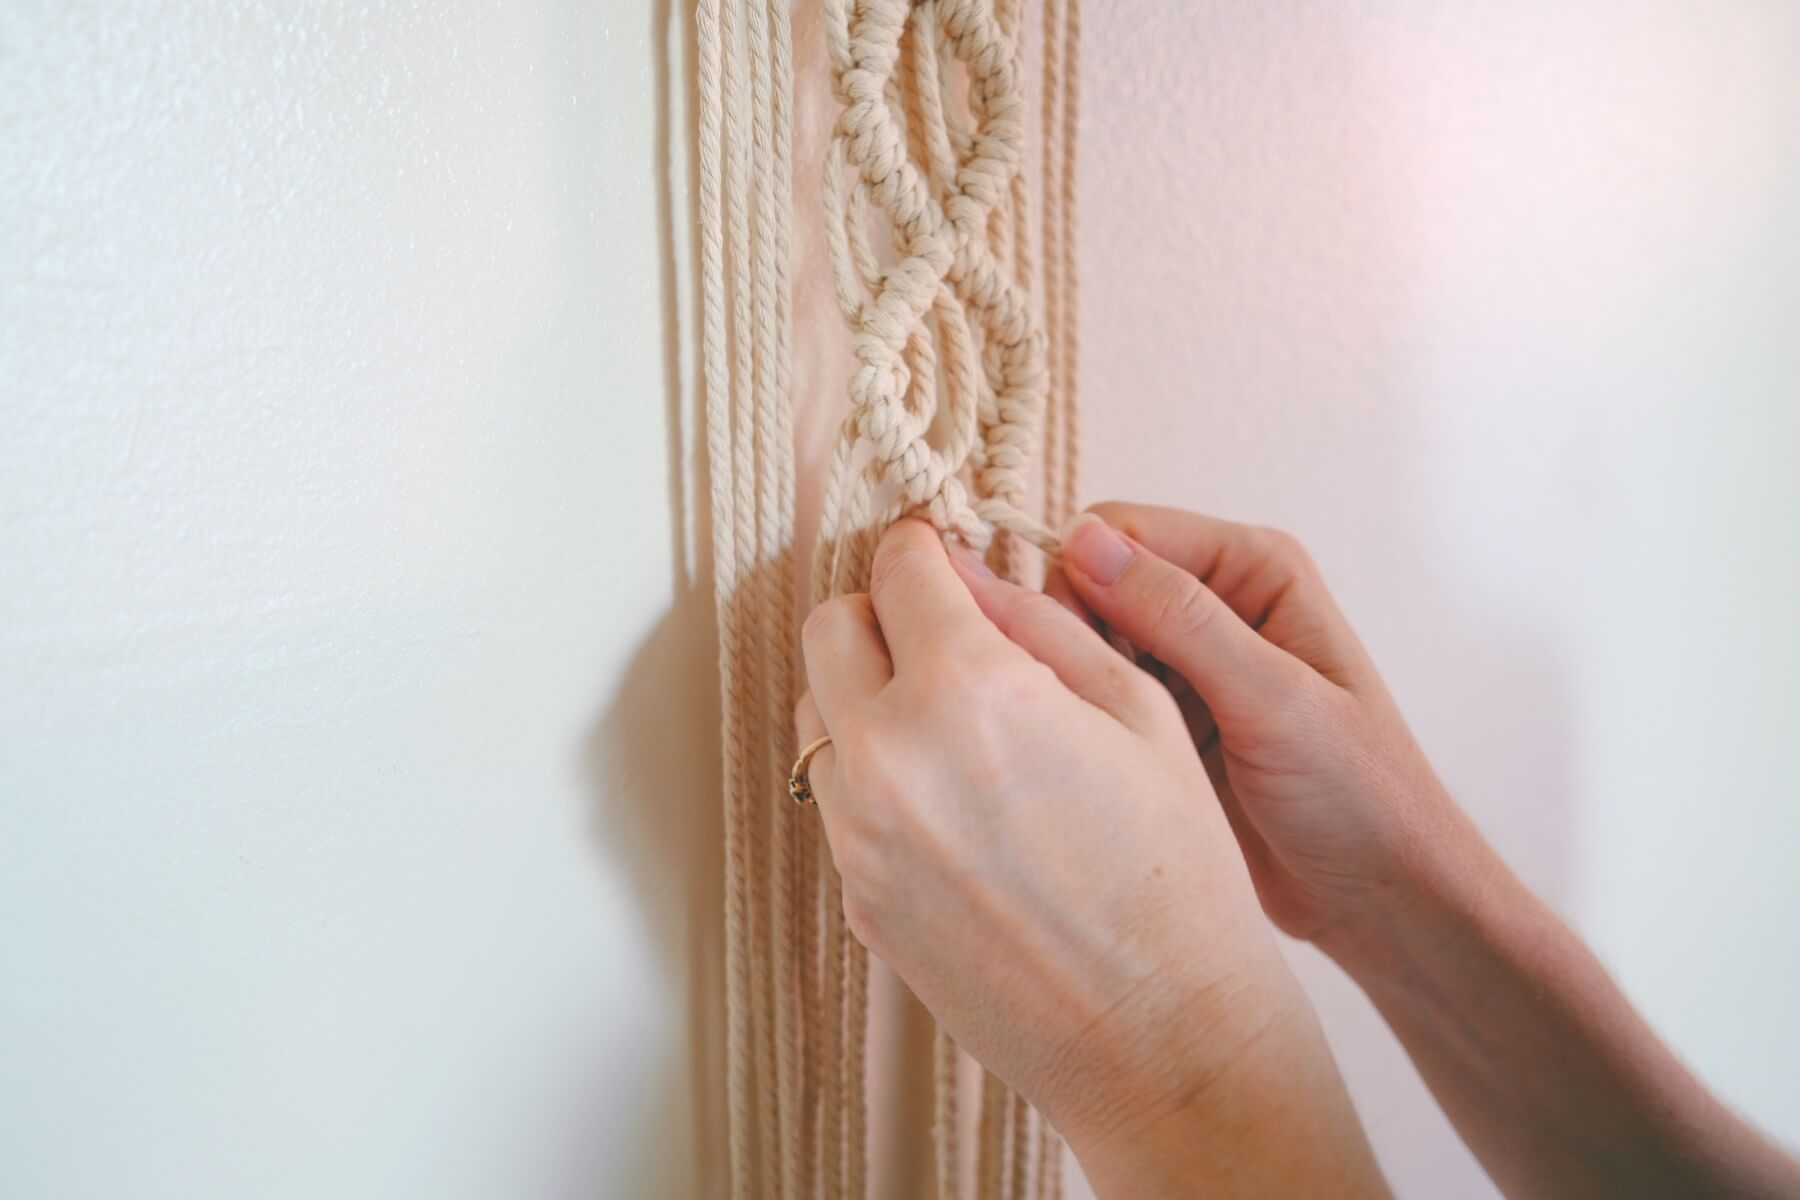 finishing the macrame knot work on the wall hanging